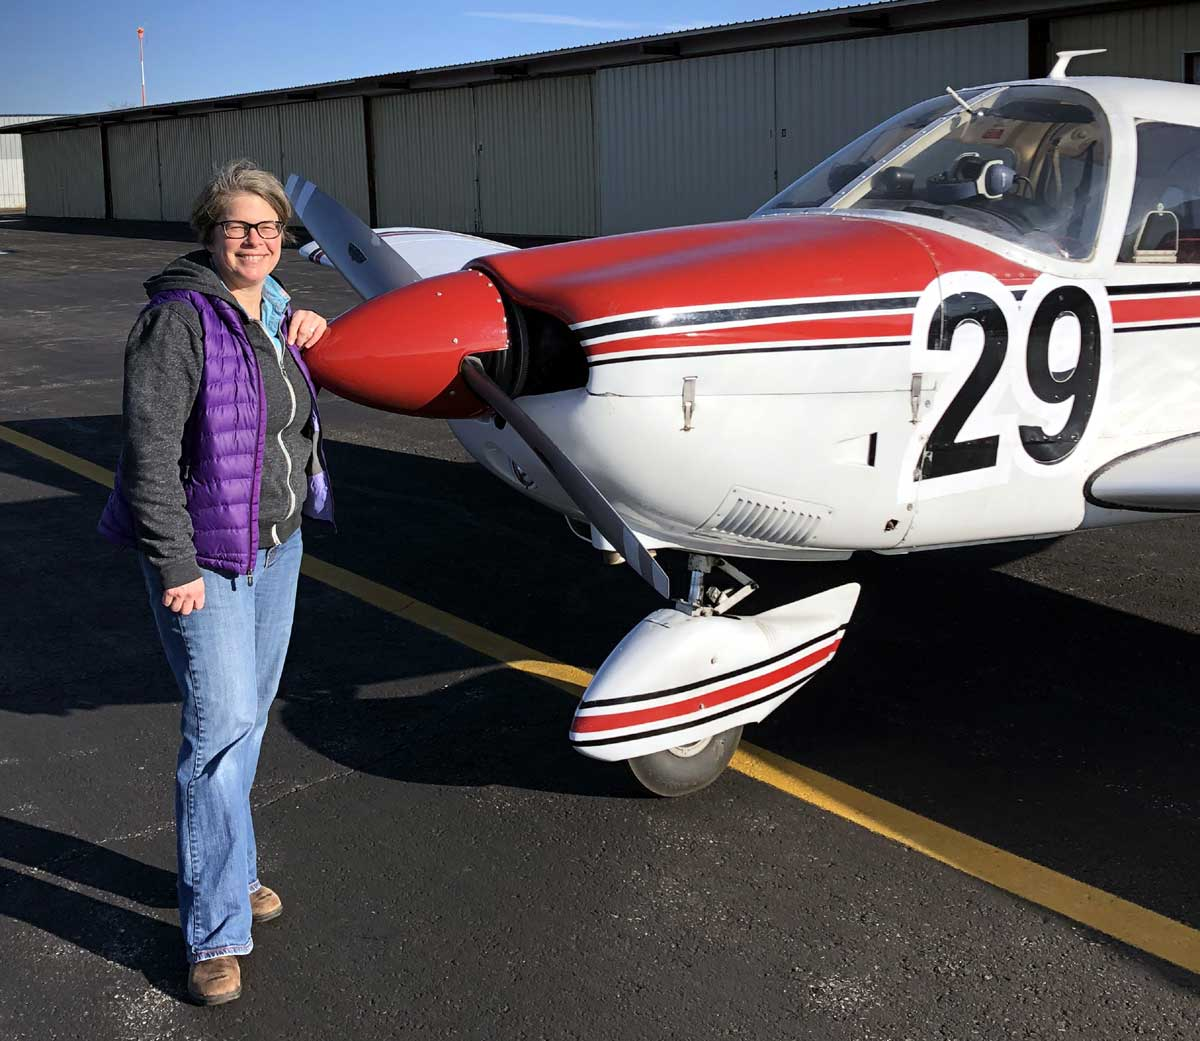 pilot stands at front of small plane